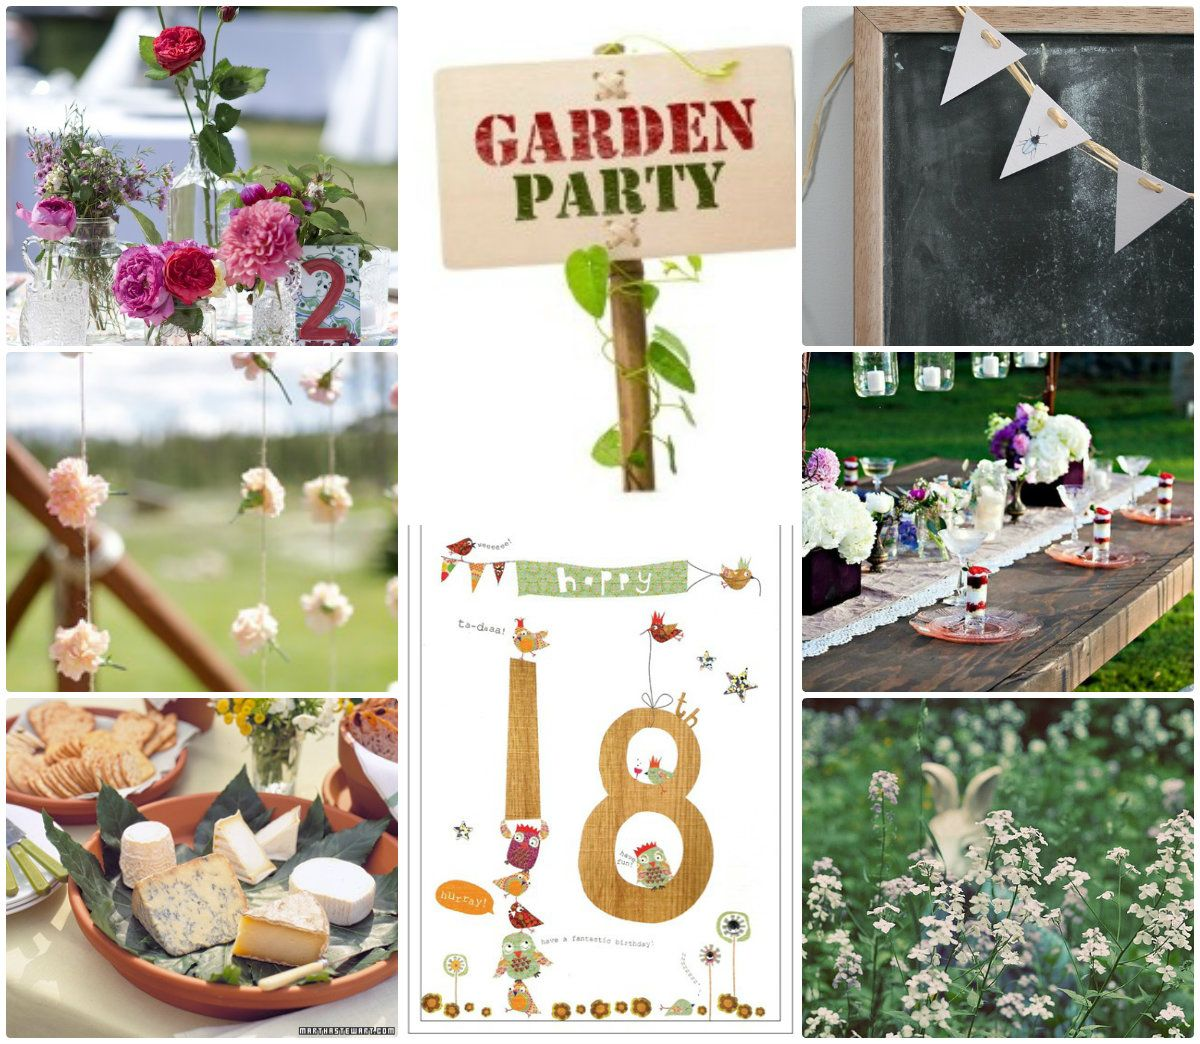 Fantastic 18th Birthday Party Ideas - Village Garden Theme | Party ...